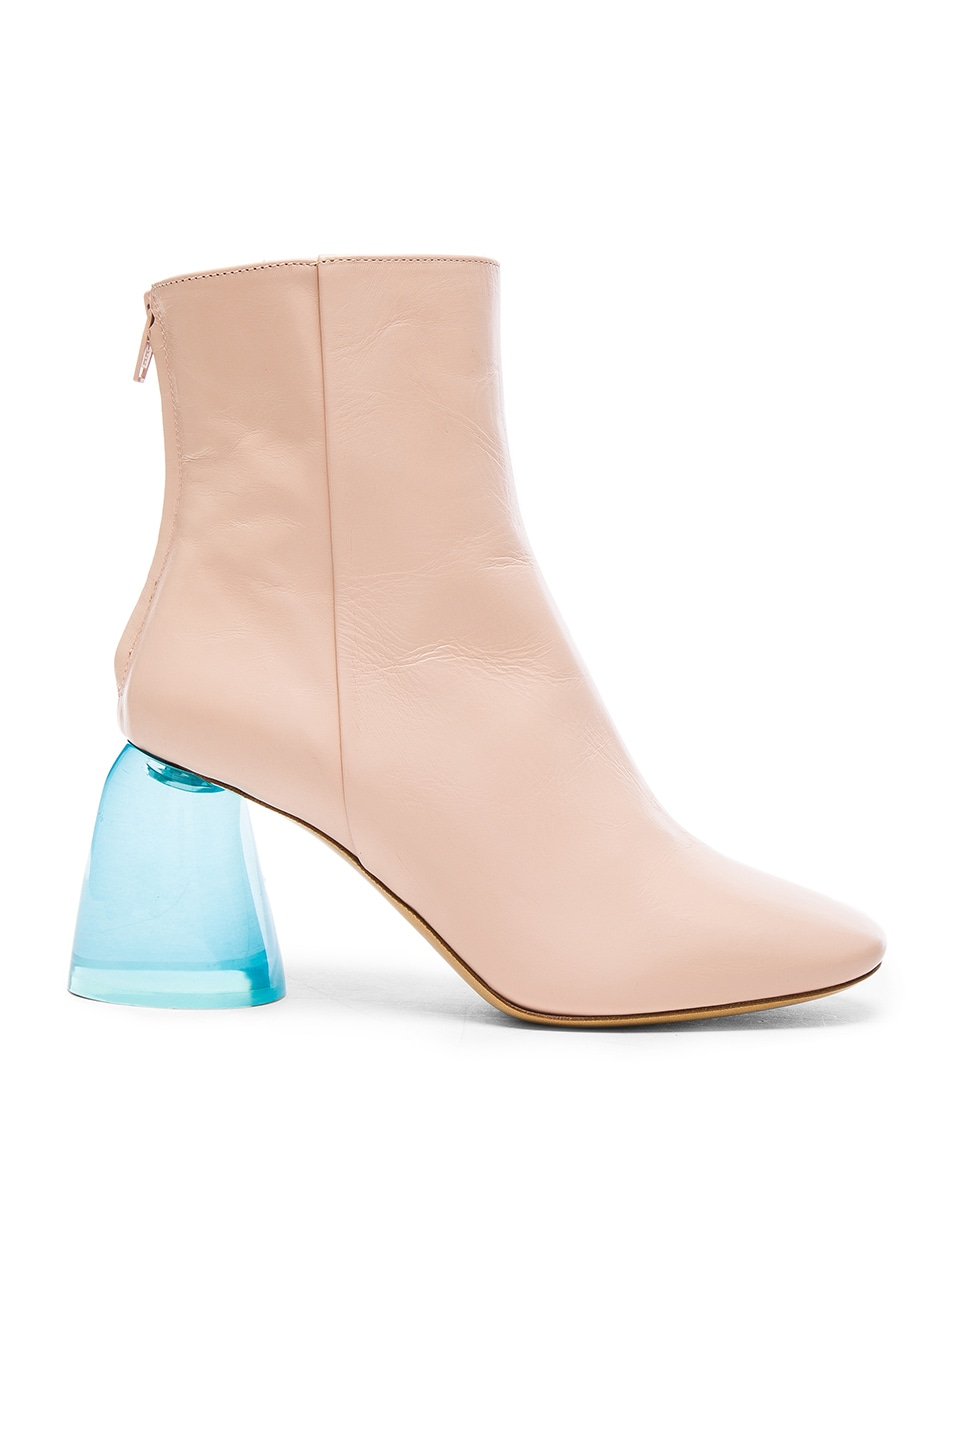 Image 1 of Ellery Leather Sacred Booties in Nude & Aqua